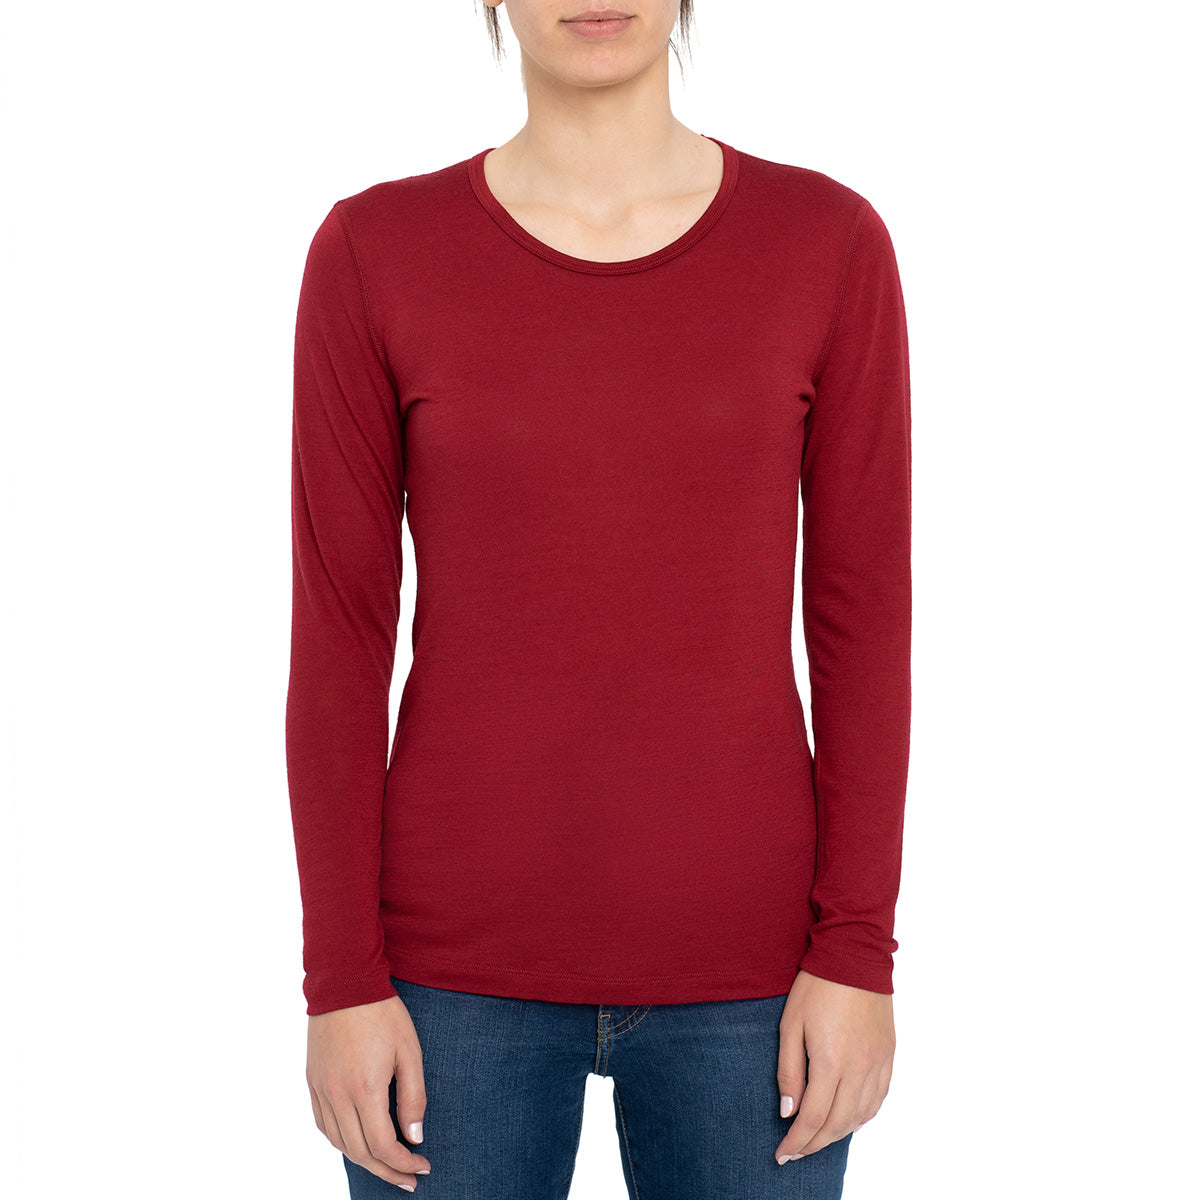 menique Women's Merino 160 Long Sleeve Royal Cherry Color